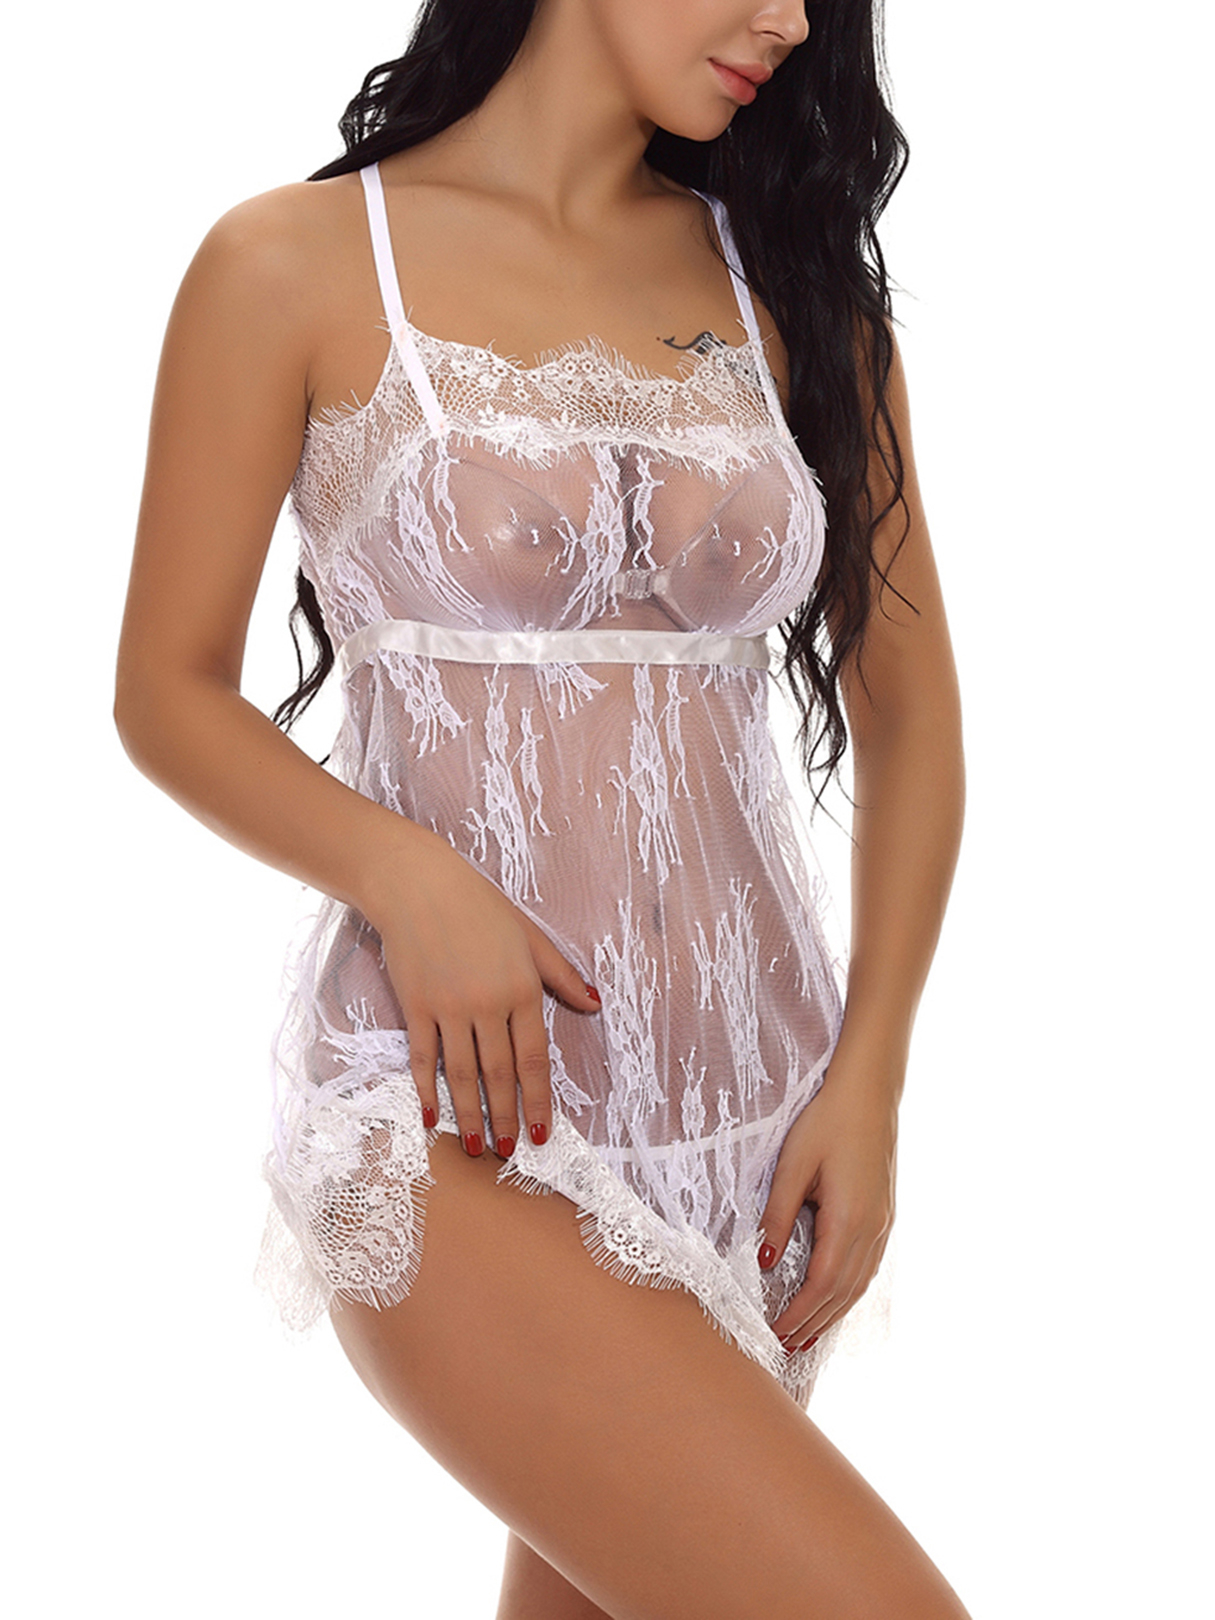 White Lace Eyelash Trim Criss Cross See-through Pajamas with T-thong bow lace teddy with thong